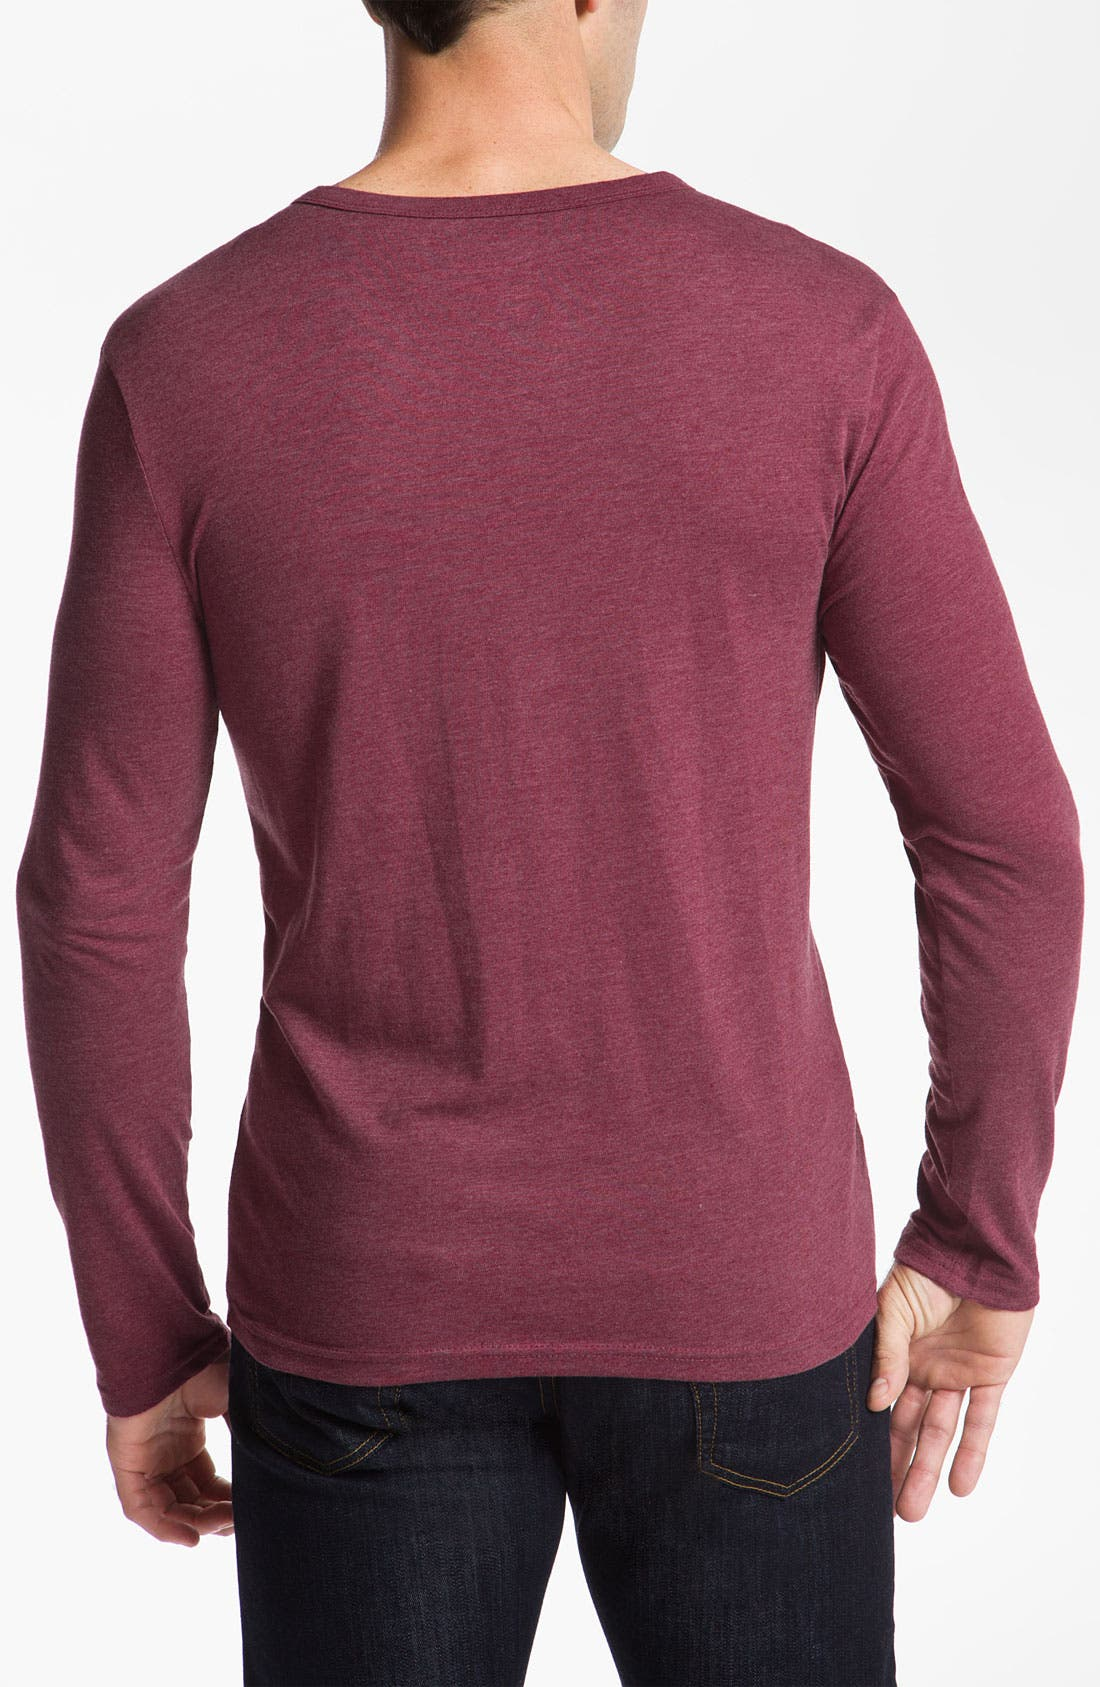 Alternate Image 2  - The Rail by Public Opinion Long Sleeve T-Shirt